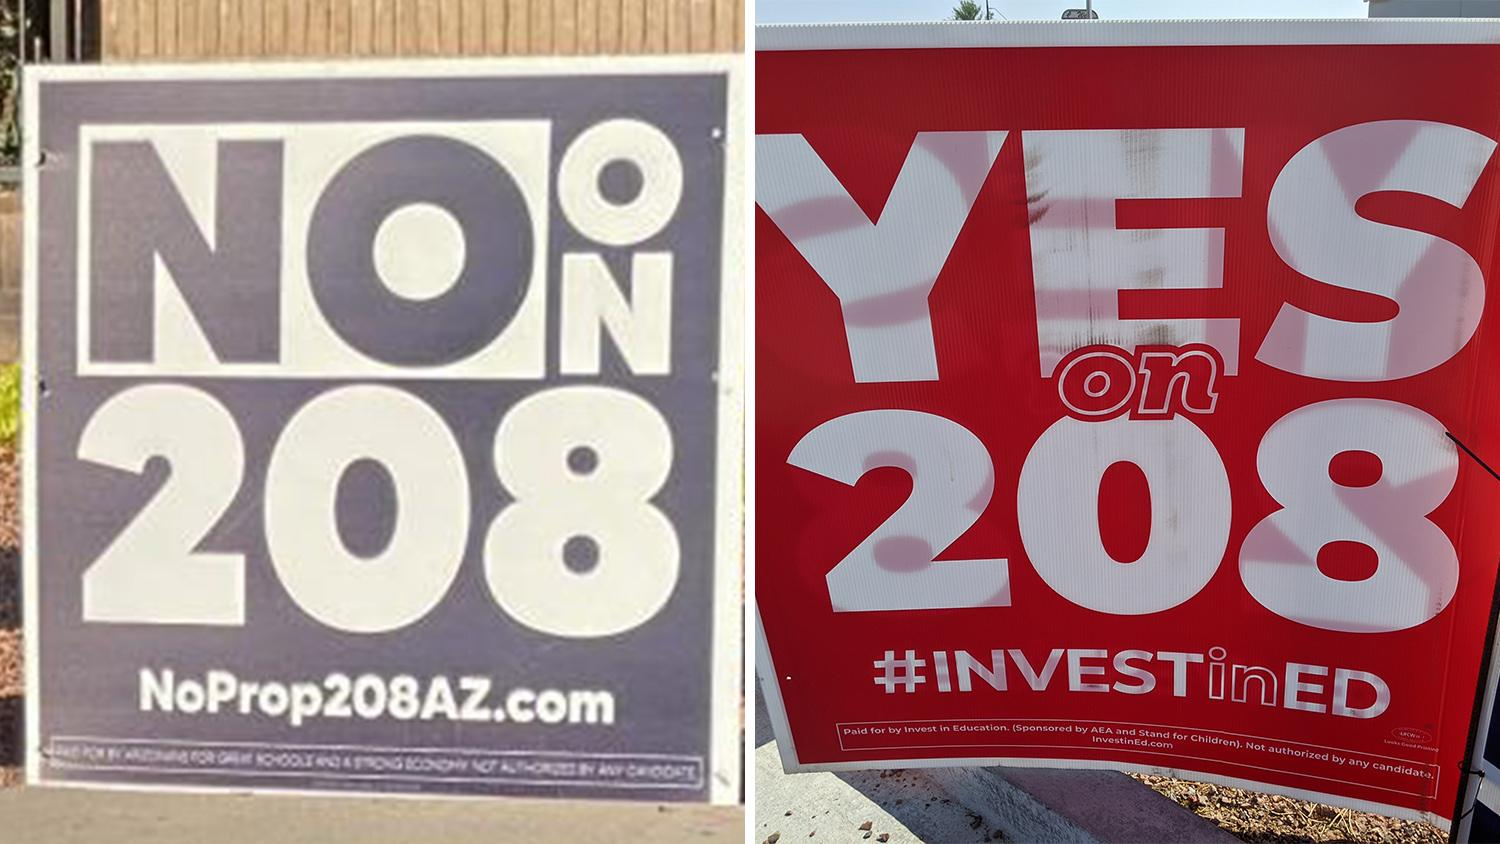 Signs against and for Arizona Proposition 208